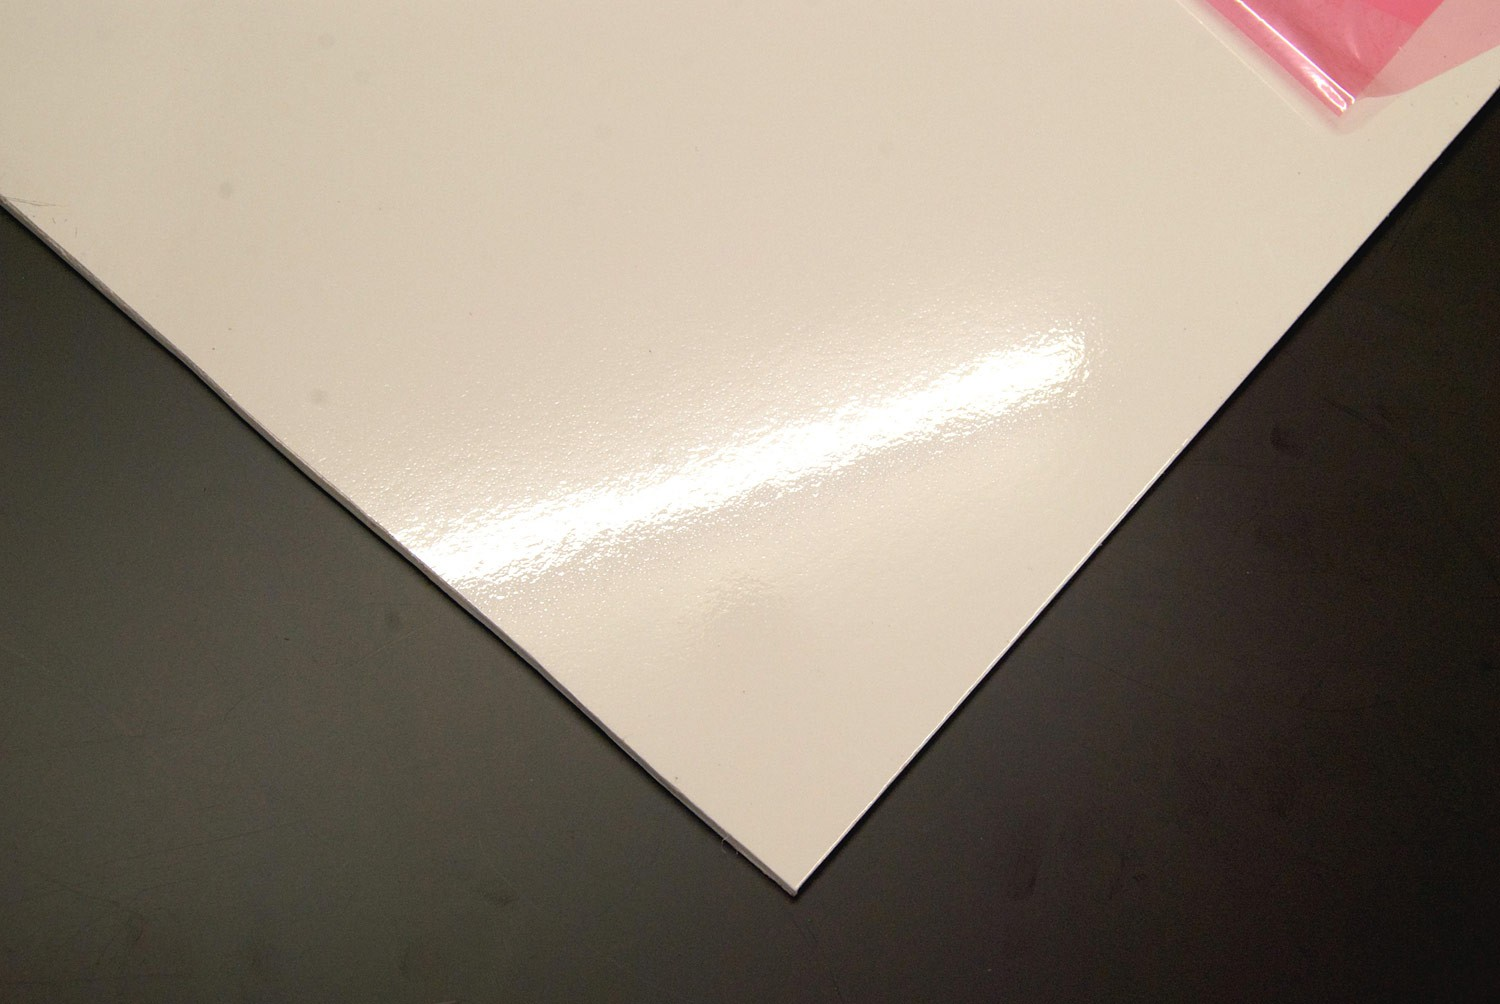 3mm Foamex PVC 2440 x 1220mm (White Gloss)